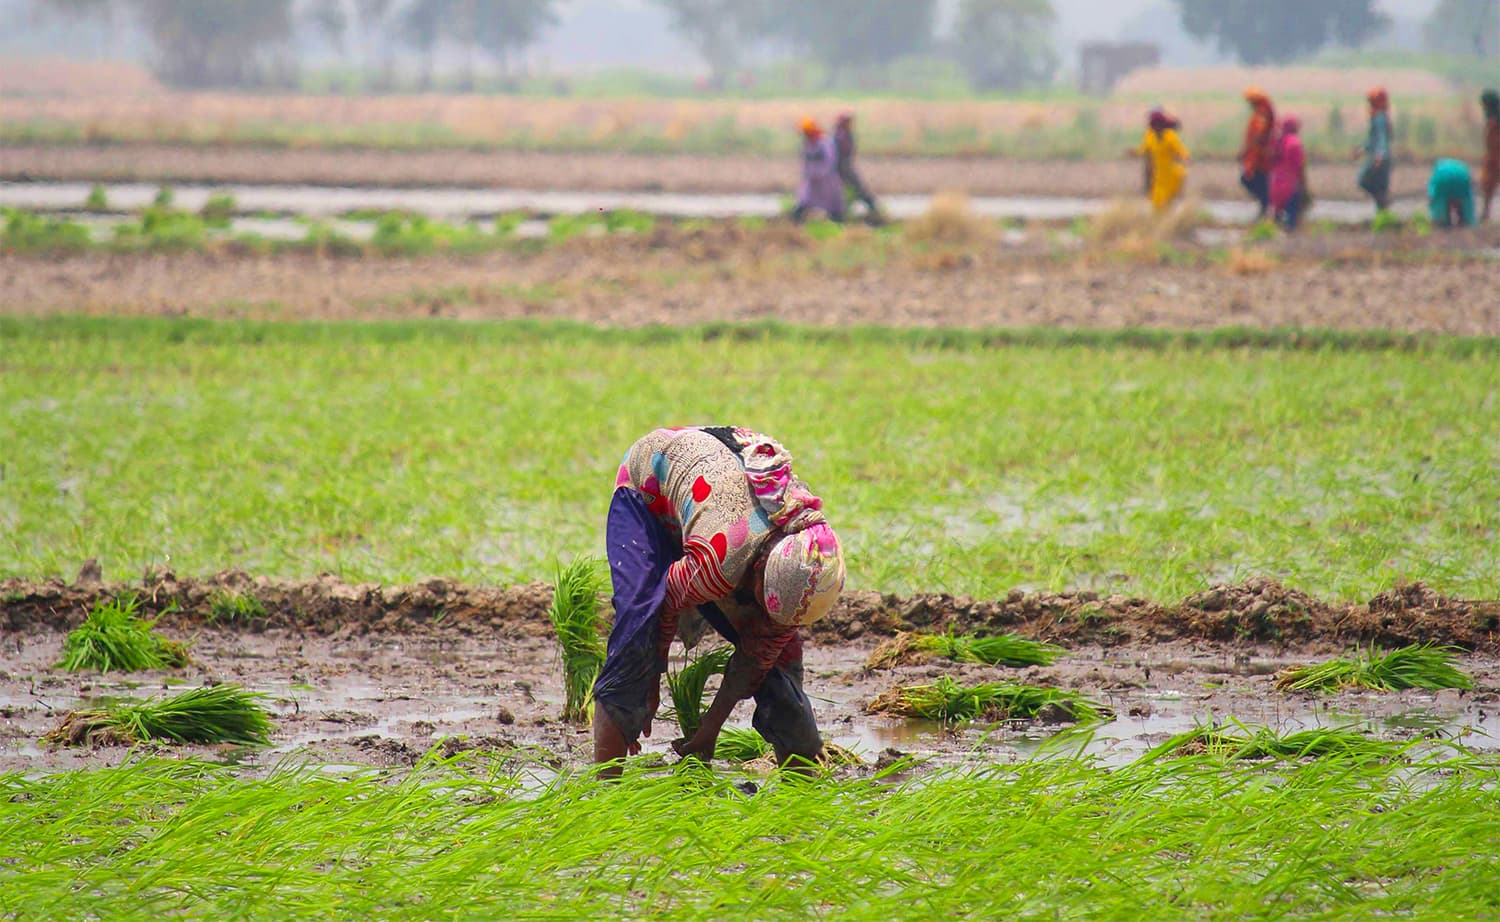 Women work in harsh conditions, for minimum wages in rice fields across Punjab. — Photos by Ahsan Mahmood.